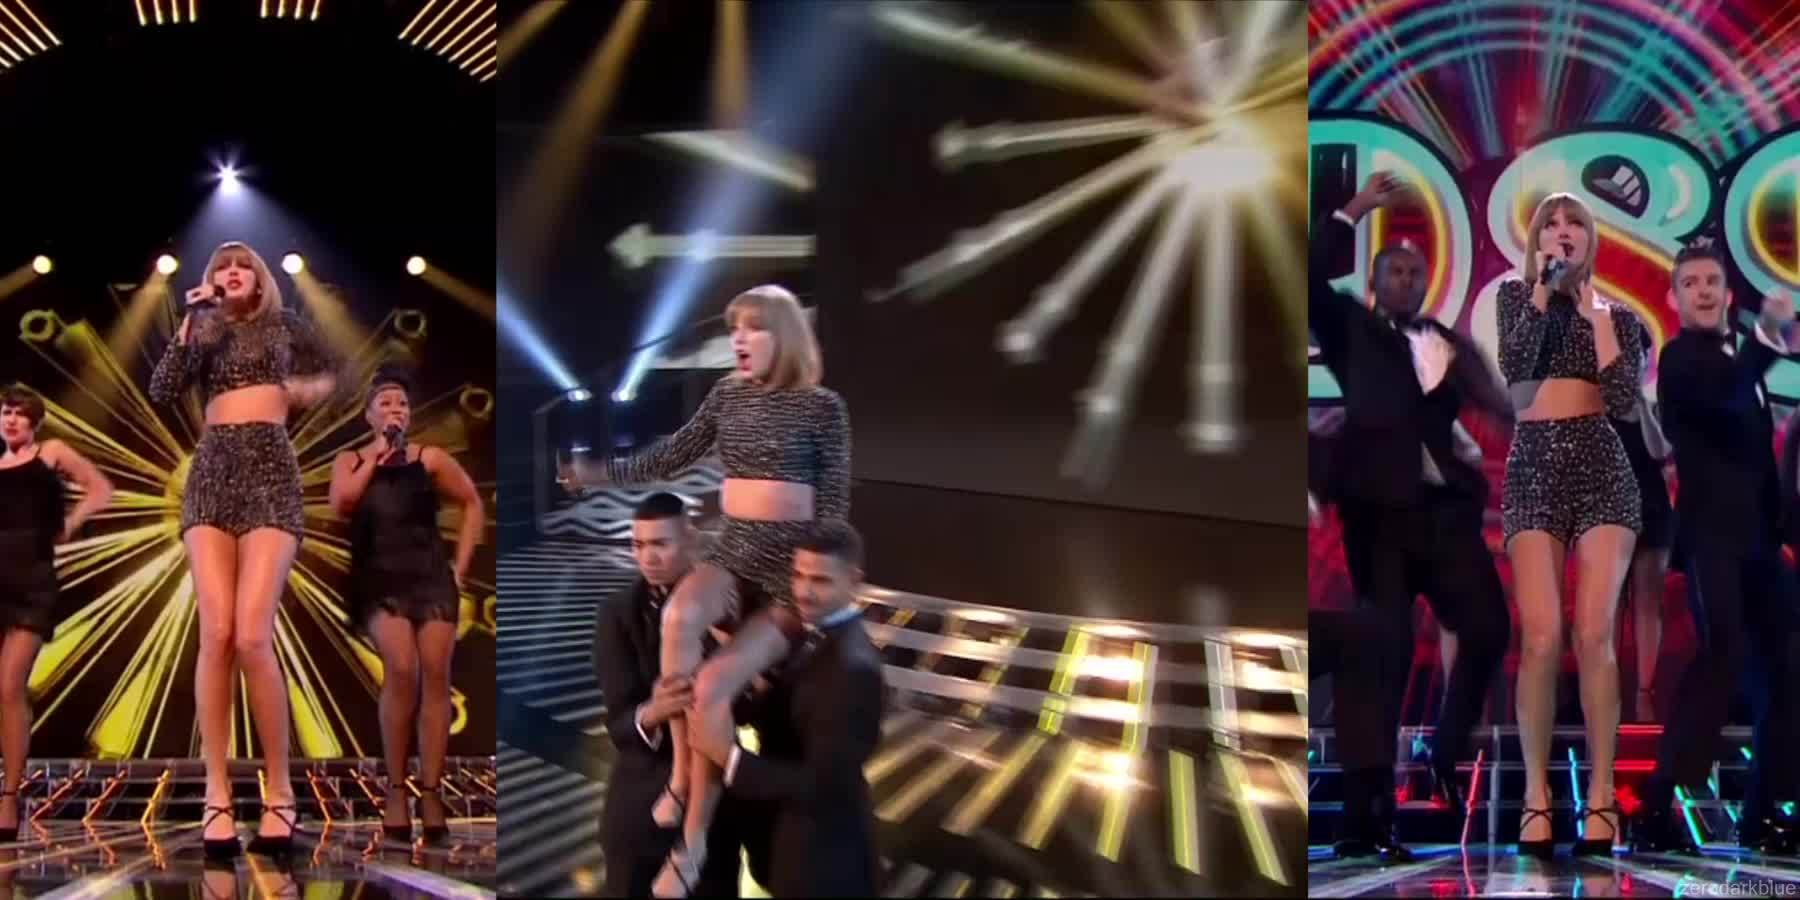 TaylorSwiftPictures, TaylorSwiftsLegs, Taylor Swift and those legs GIFs